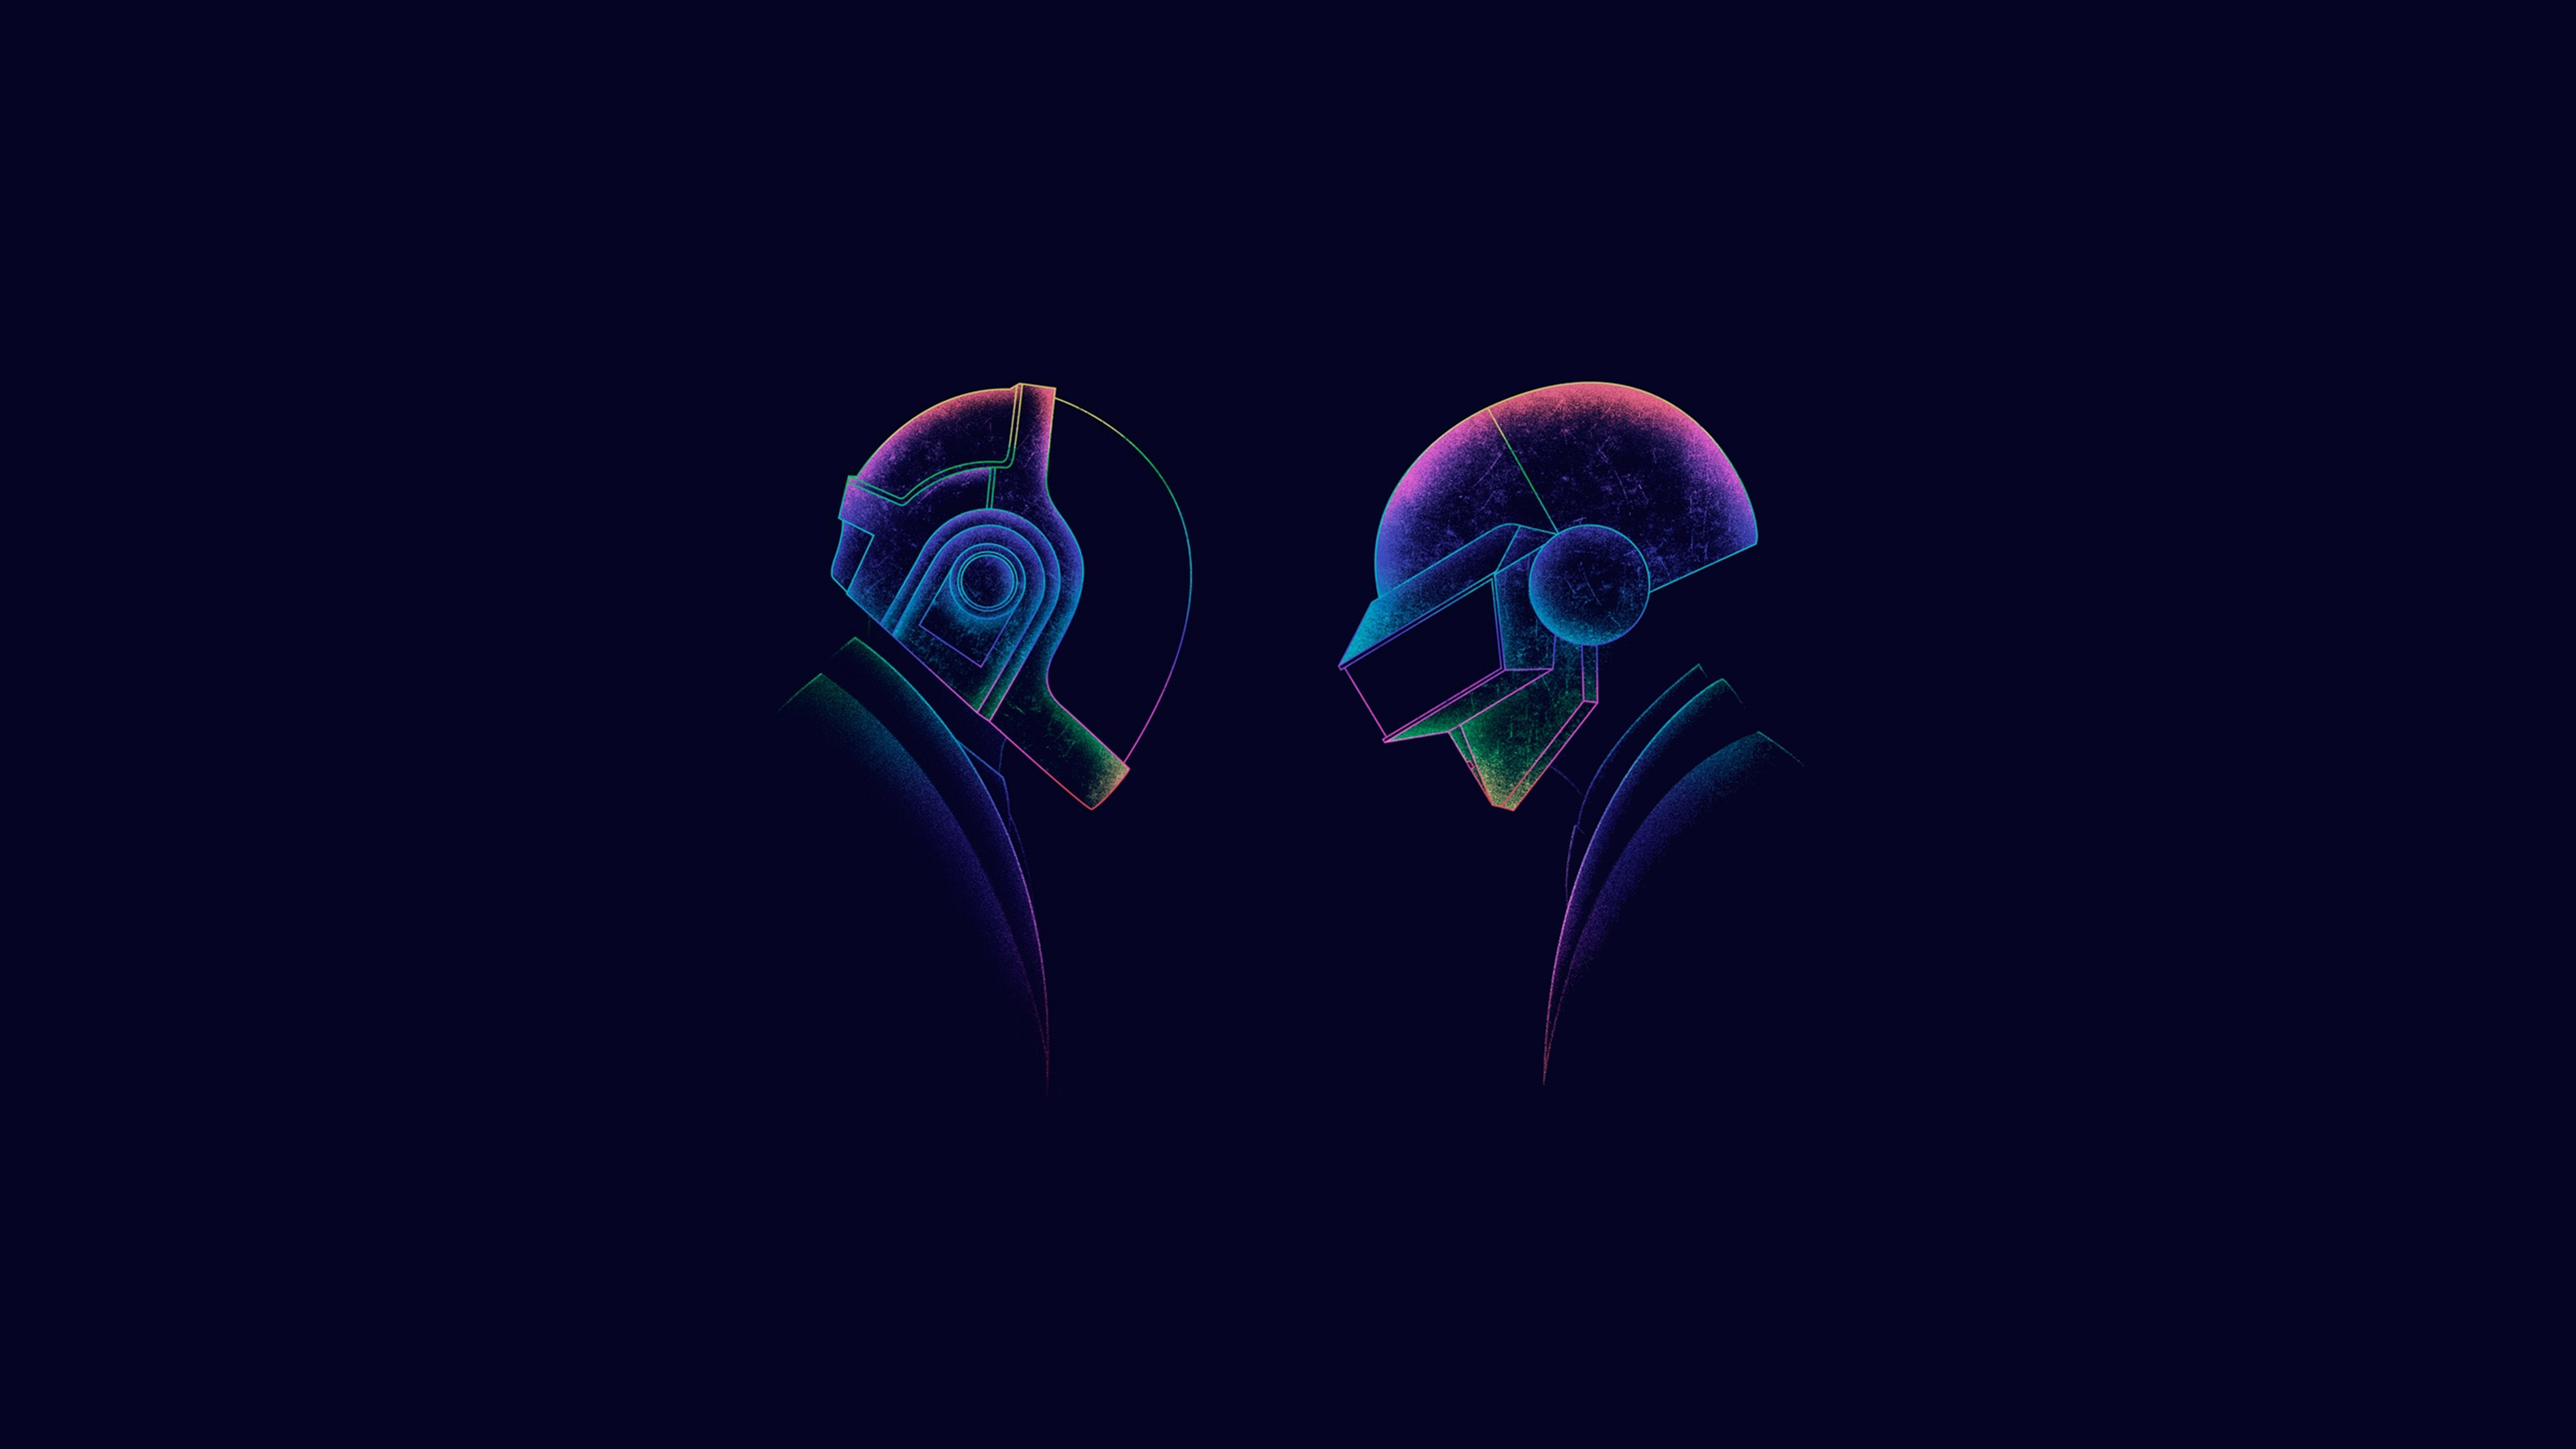 Daft Punk Minimal Dj Art, HD 4K Wallpaper